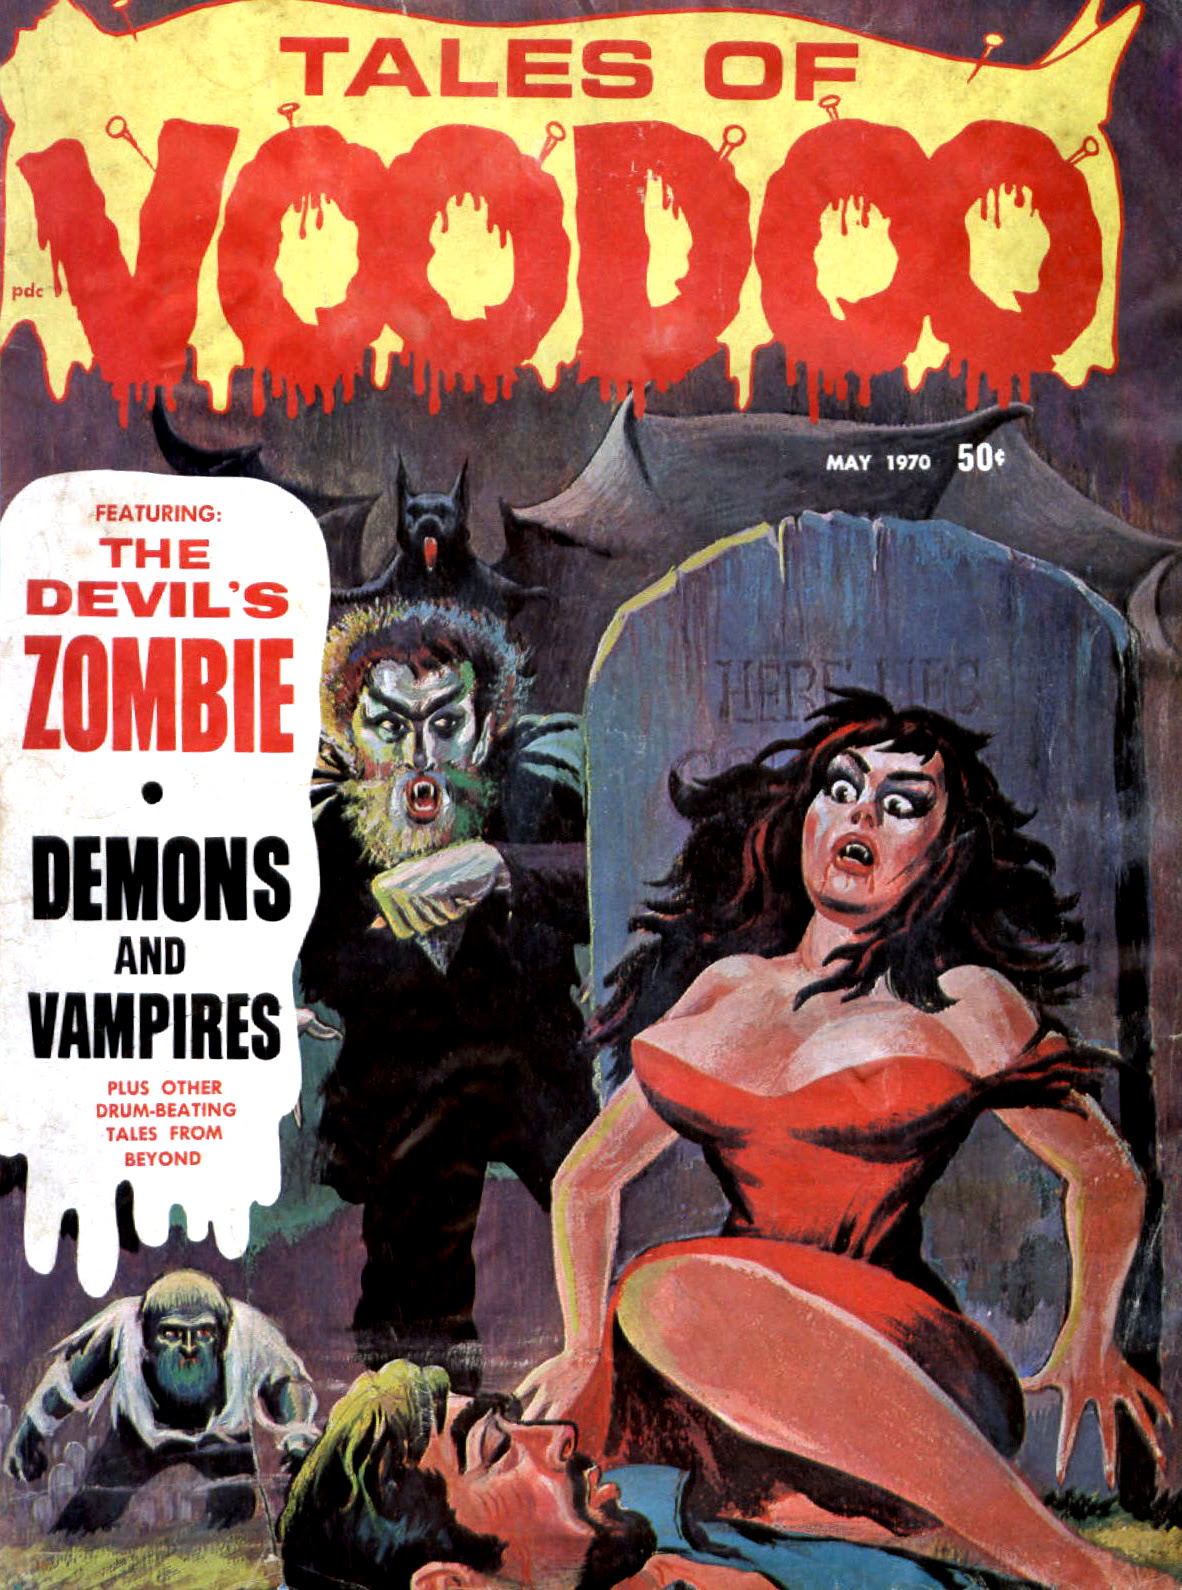 Tales of Voodoo Vol. 3 #3 (Eerie Publications 1970)